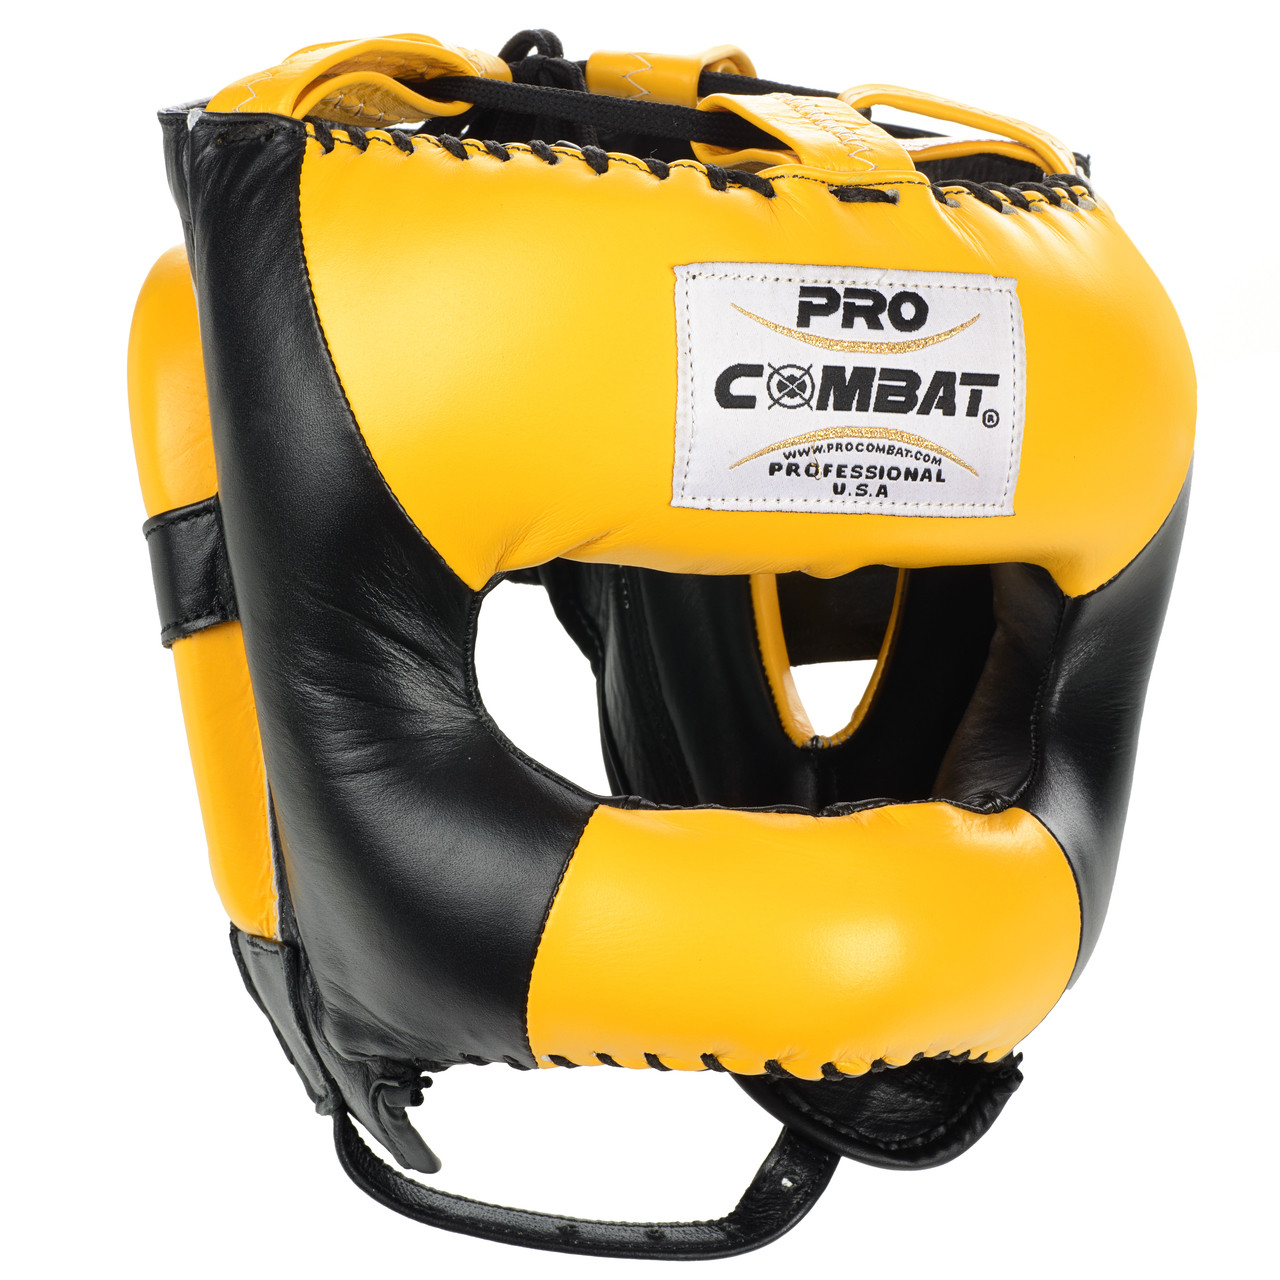 aed17b37a PRO COMBAT® Face Saver Leather Boxing Headgear with Nylon Face Bar - Black  / Yellow